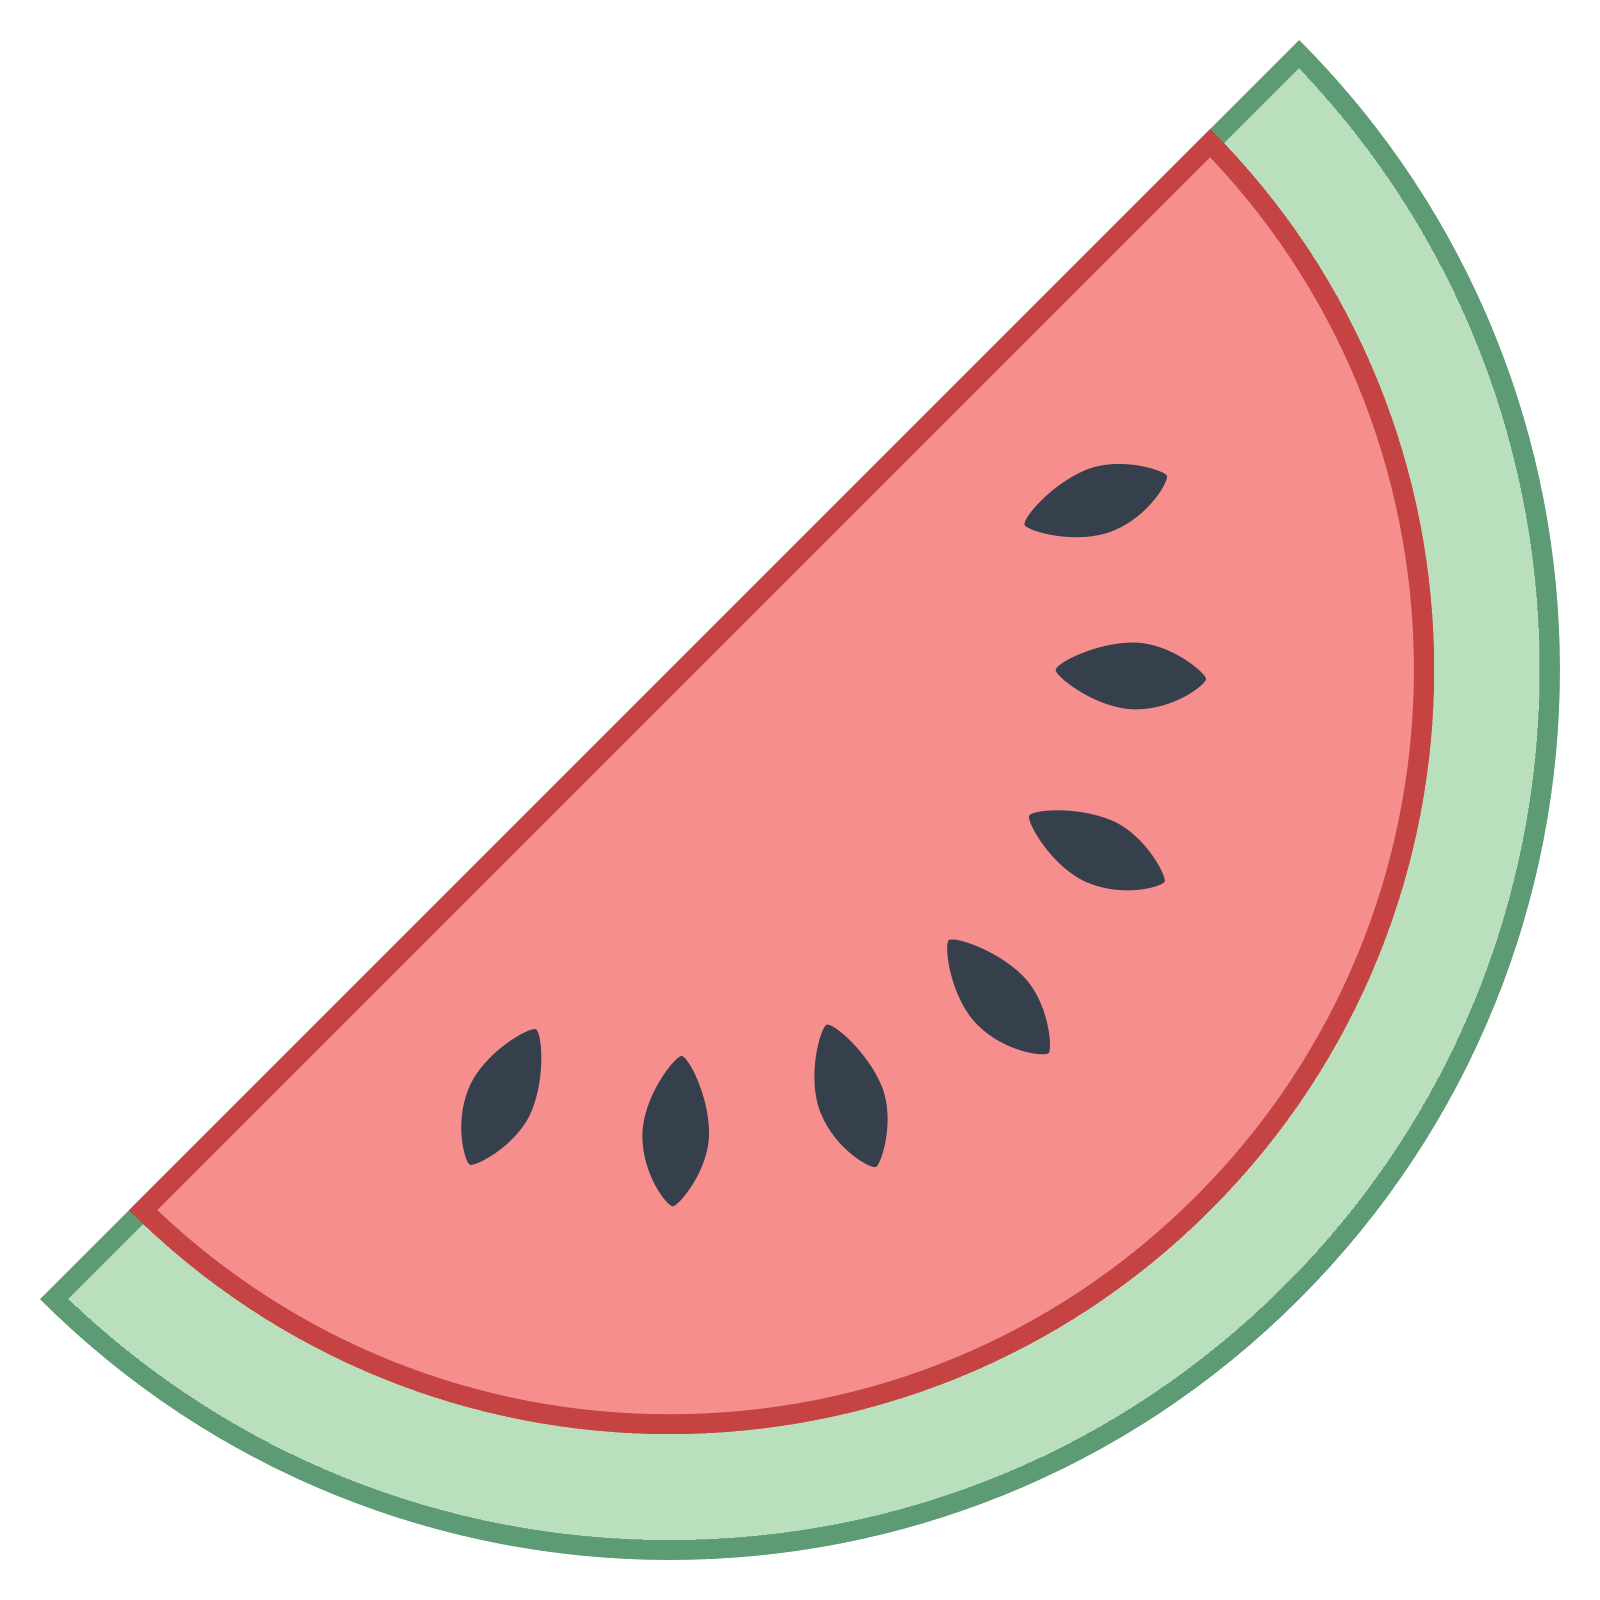 clip free library Watermelon icon free download. Vector emojis fruit